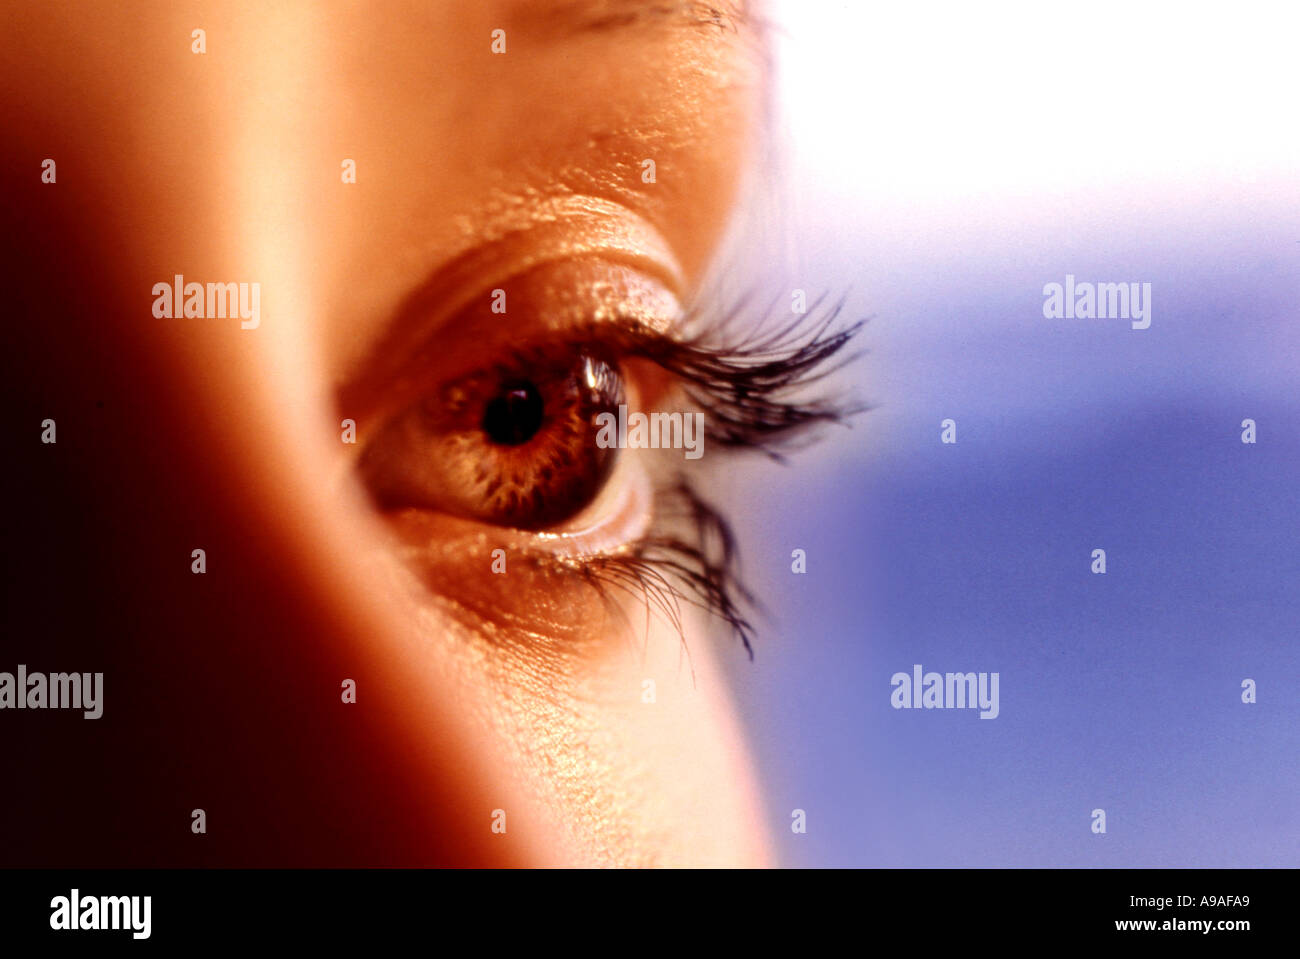 close up of woman s eye - Stock Image